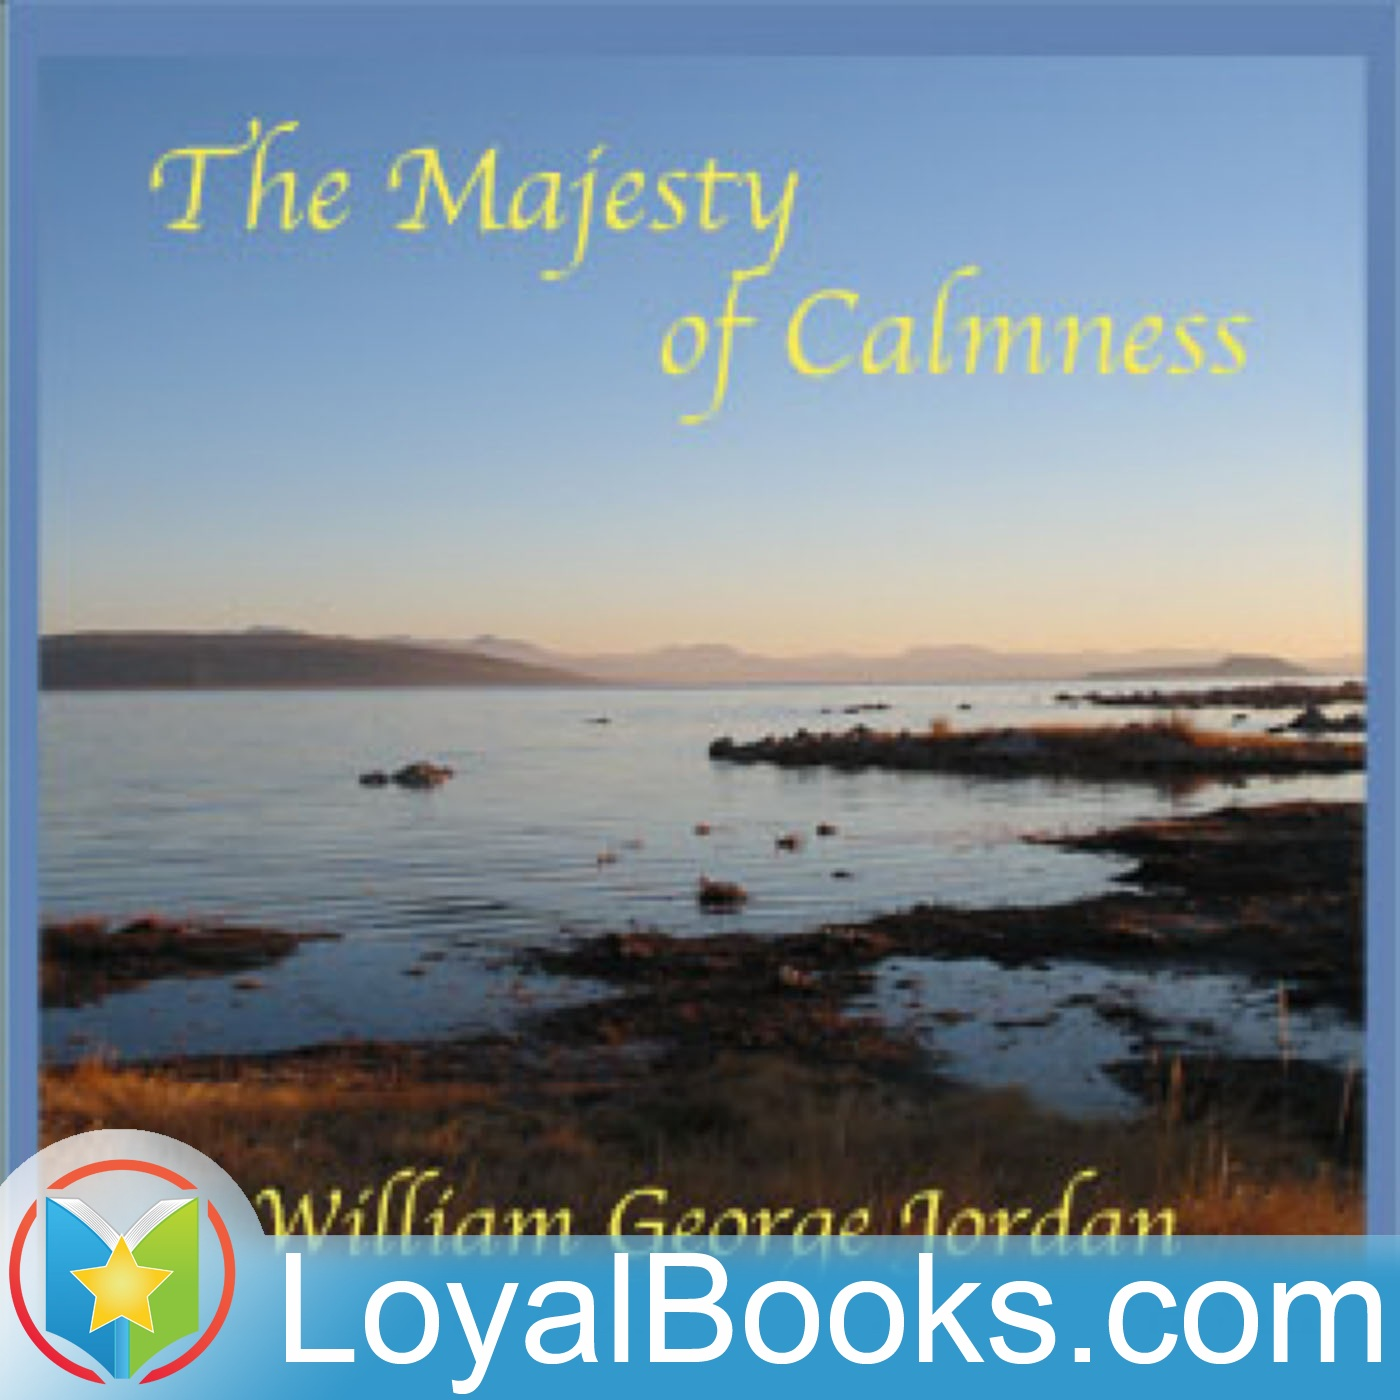 <![CDATA[The Majesty of Calmness by William George Jordan]]>